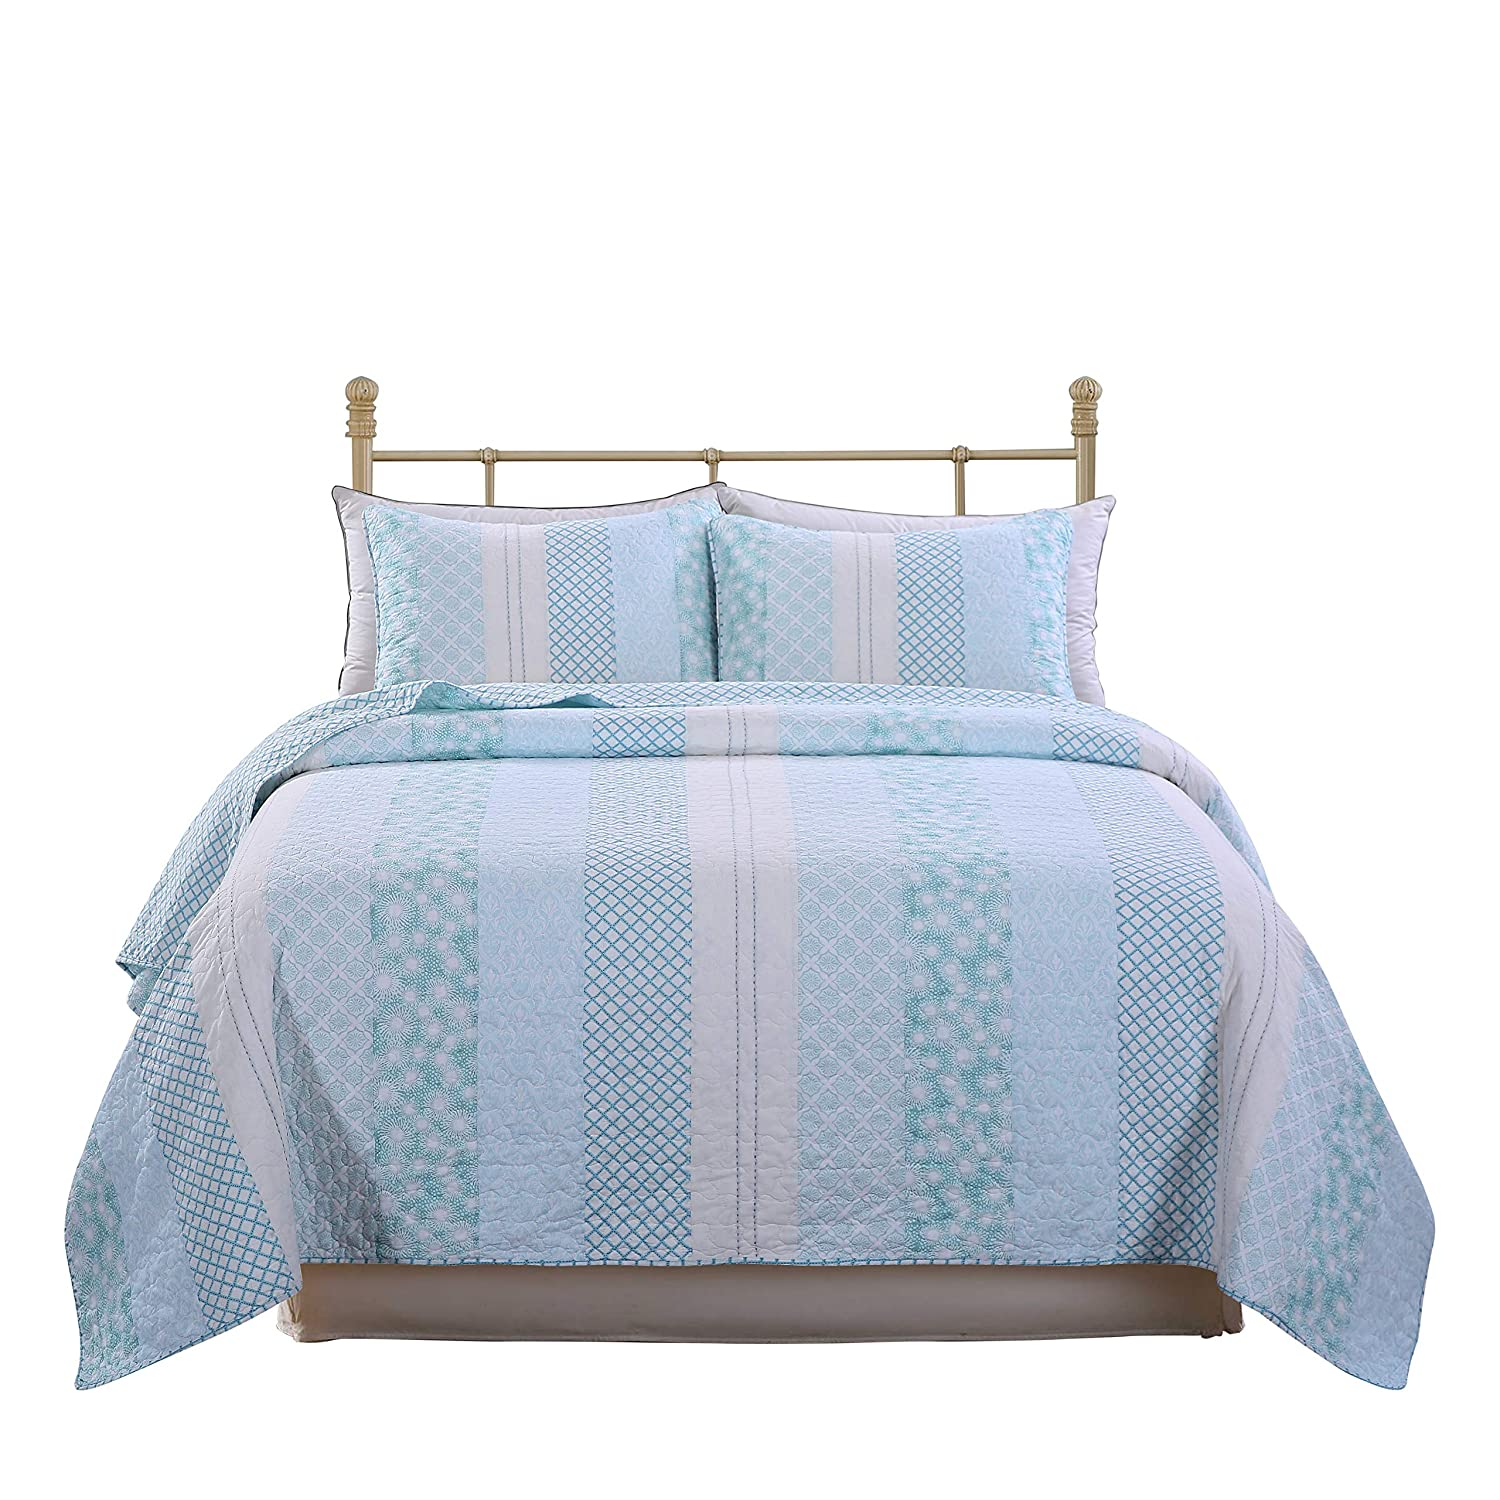 SLPR Coastal Dream 2-Piece Real Patchwork Cotton Quilt Set (Twin) | with 1 Sham Pre-Washed Reversible Machine Washable Lightweight Bedspread Coverlet